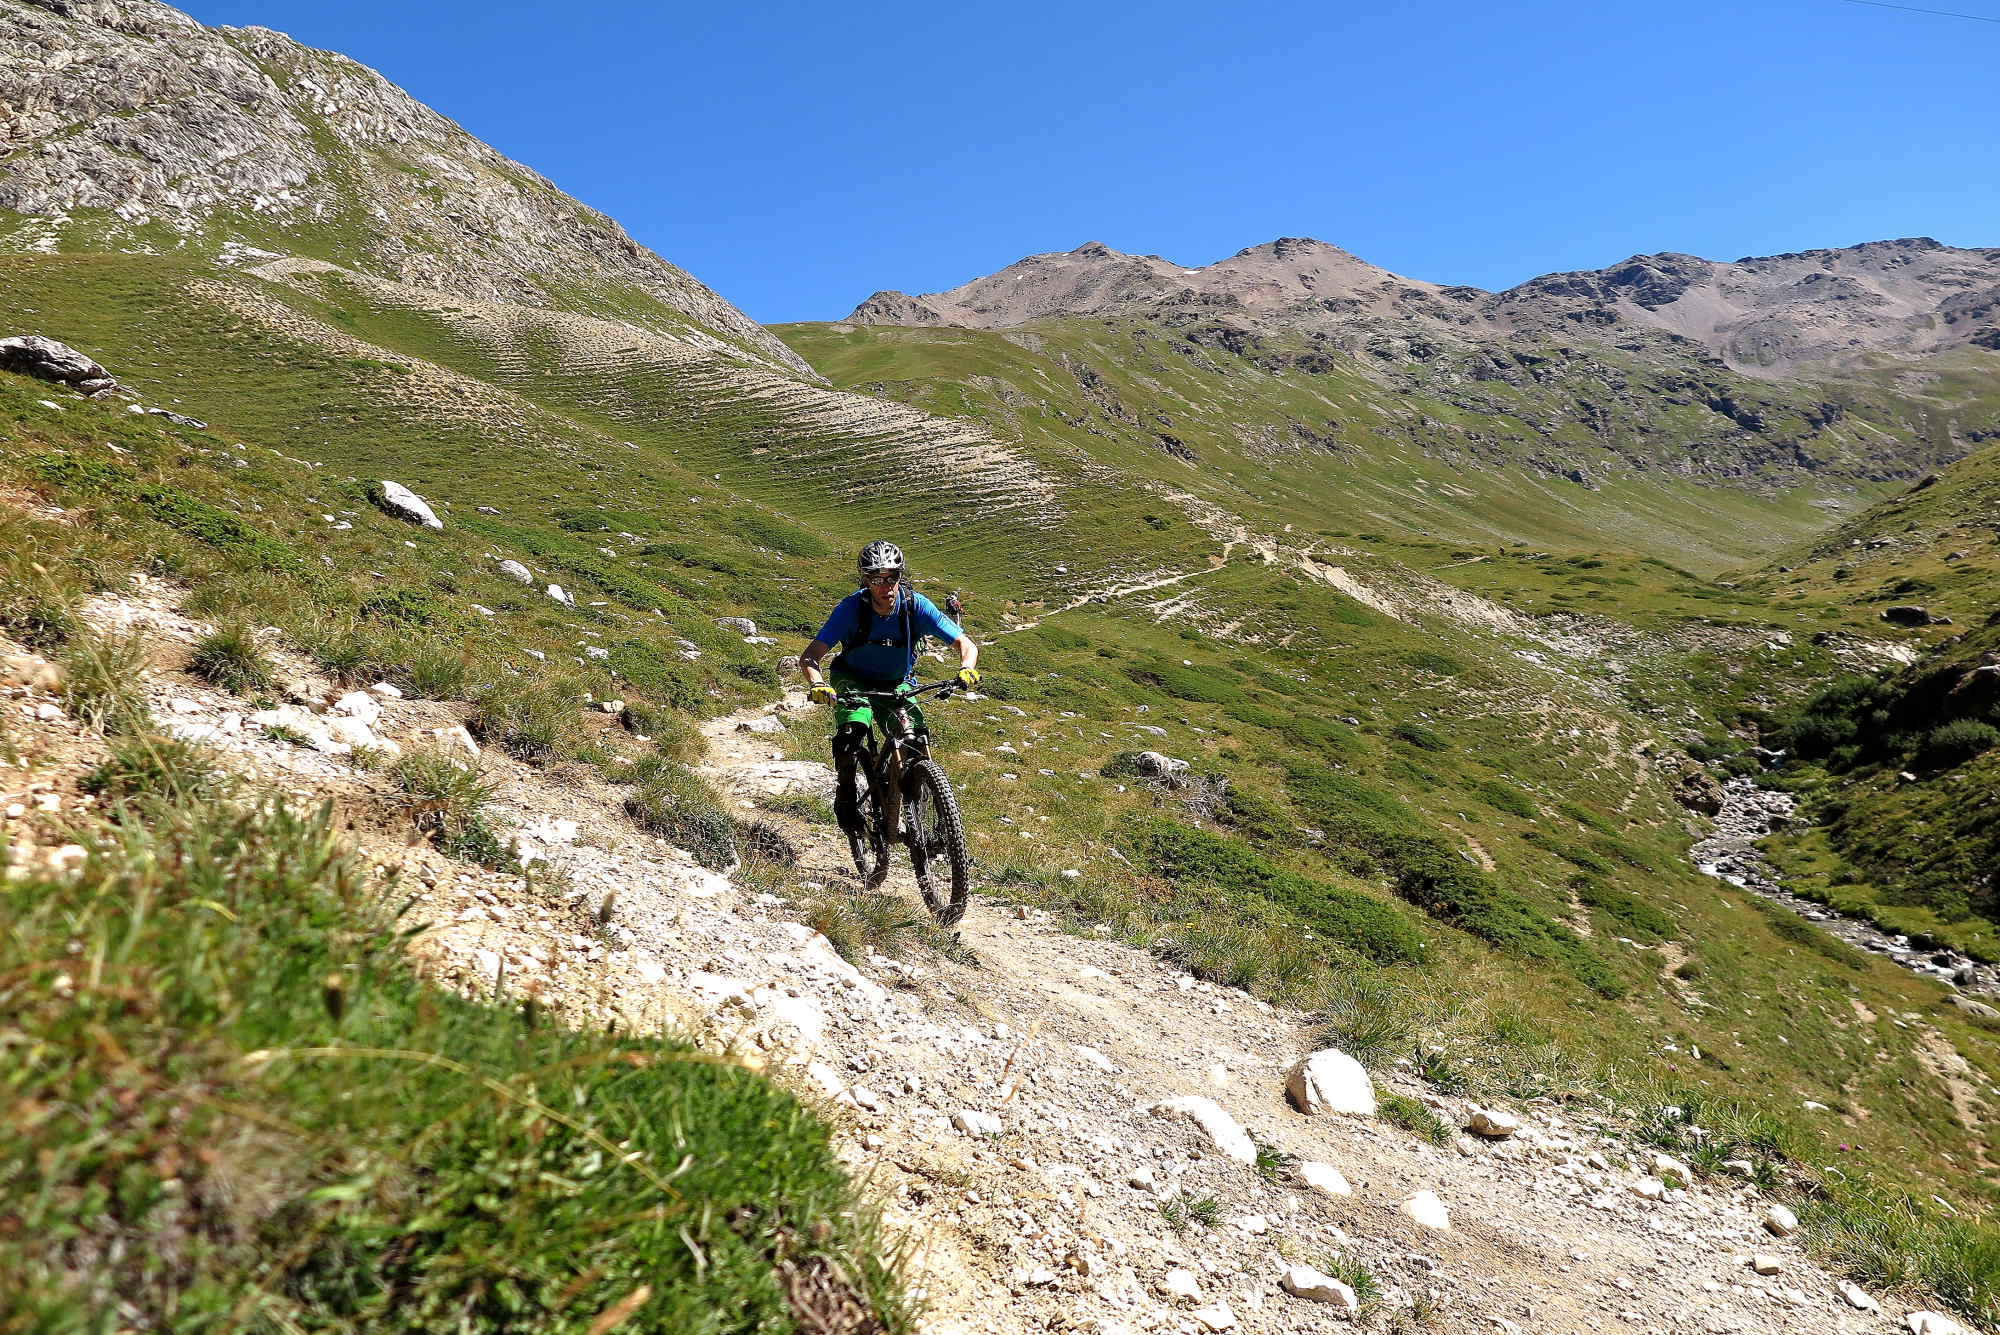 Ride Alpine Trails Mountainbike Freeride & Enduro Camp MTB Freeride Alta Rezia Ride on